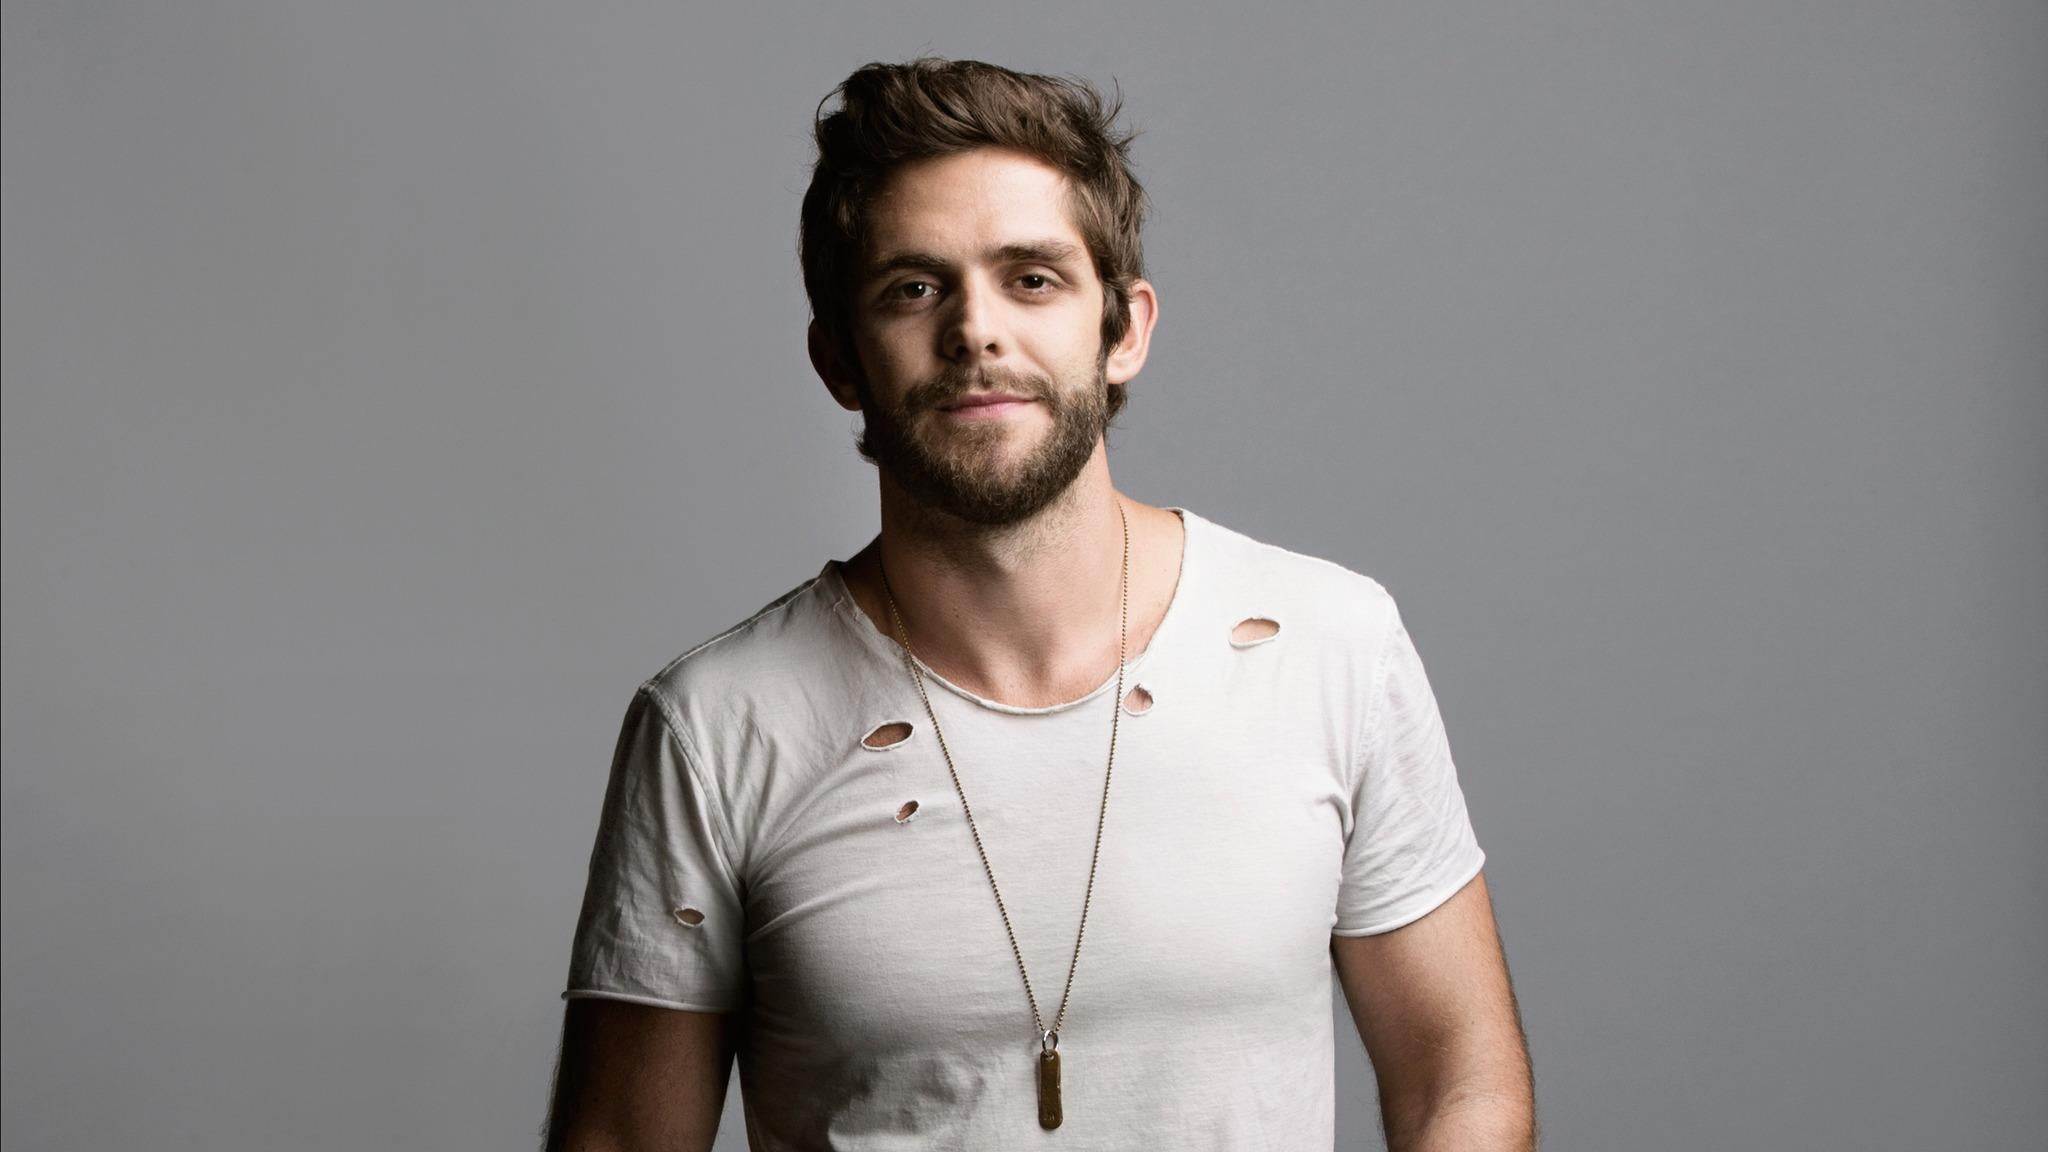 Thomas Rhett: Home Team Tour 2017 at Greek Theatre